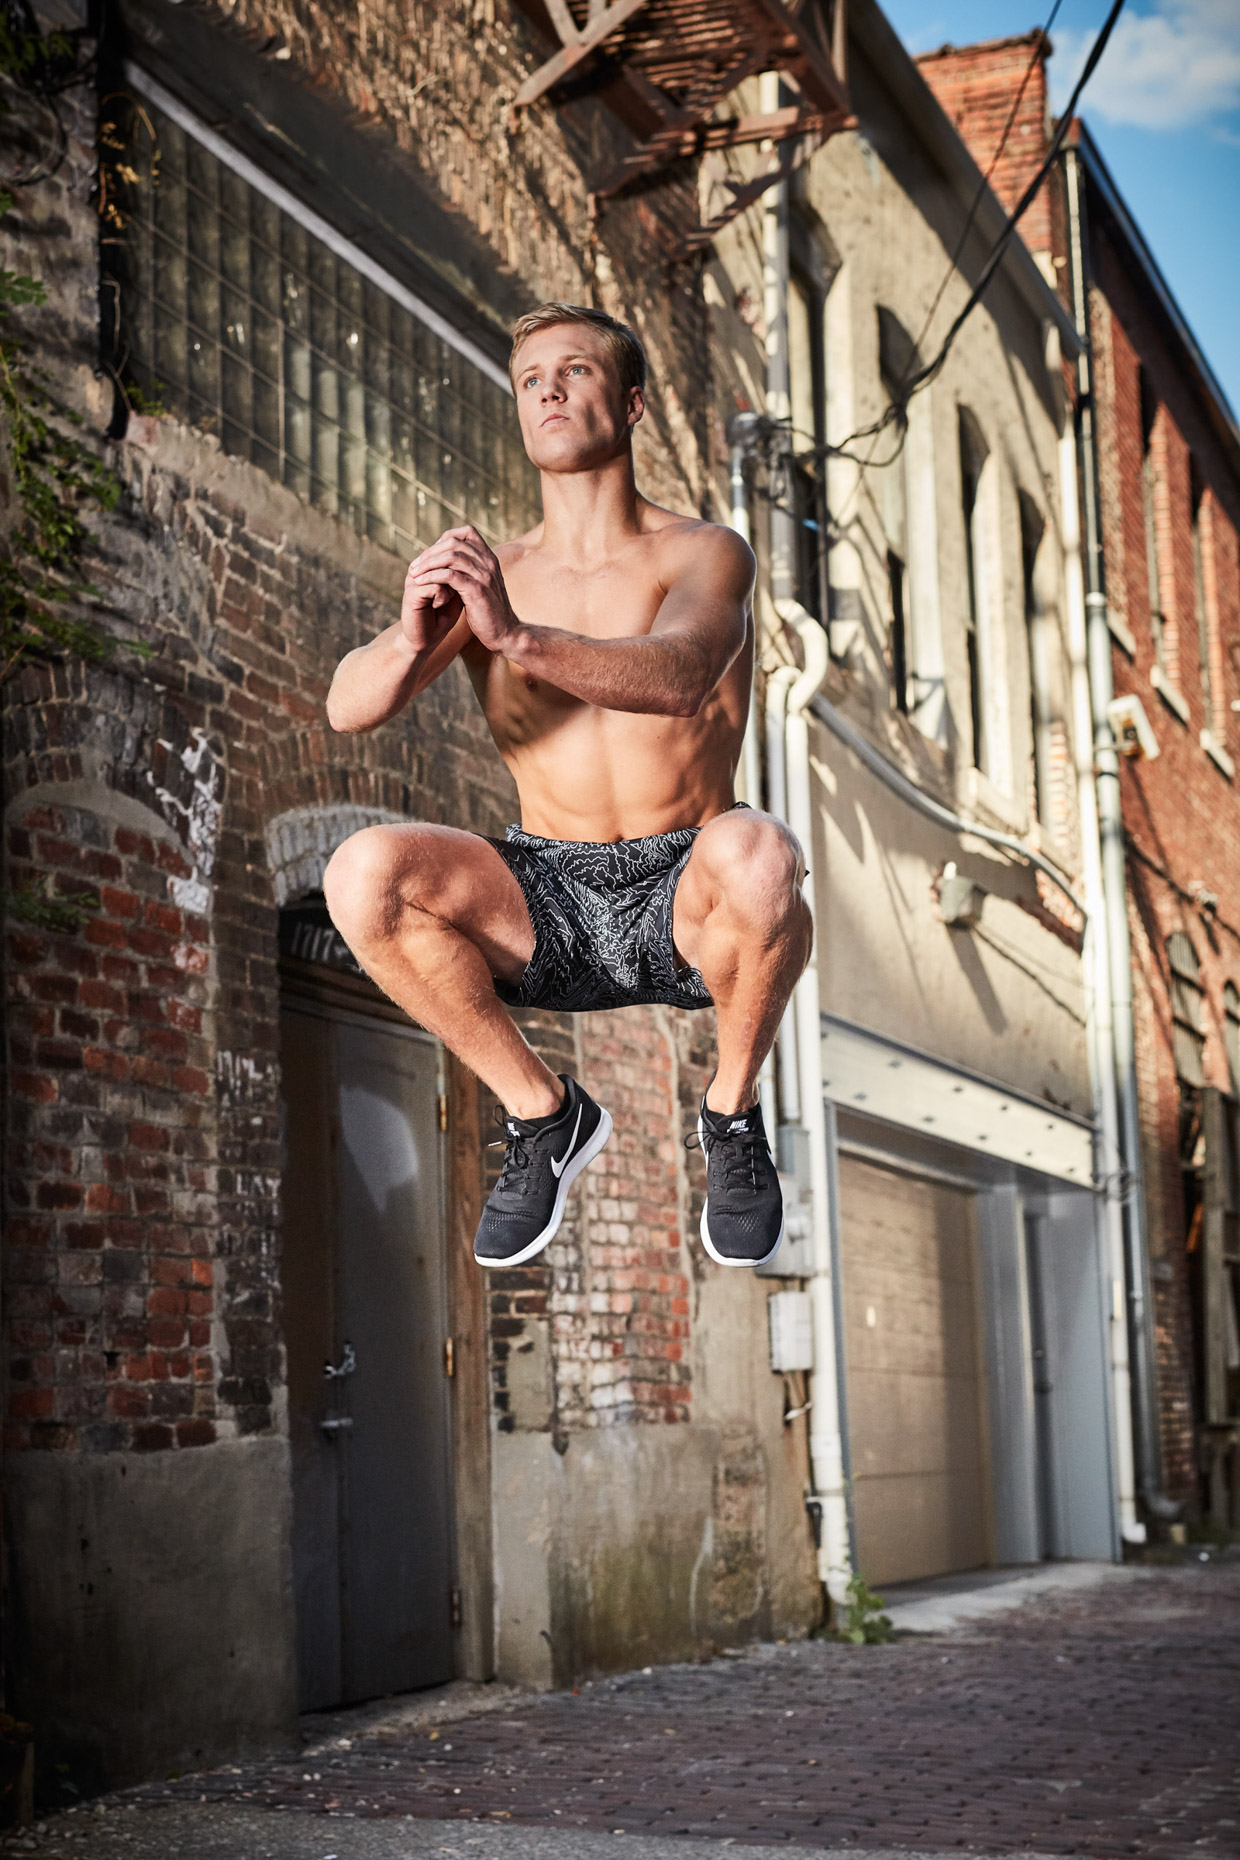 Fitness training in a back alley in Birmingham for Hibbett Sports